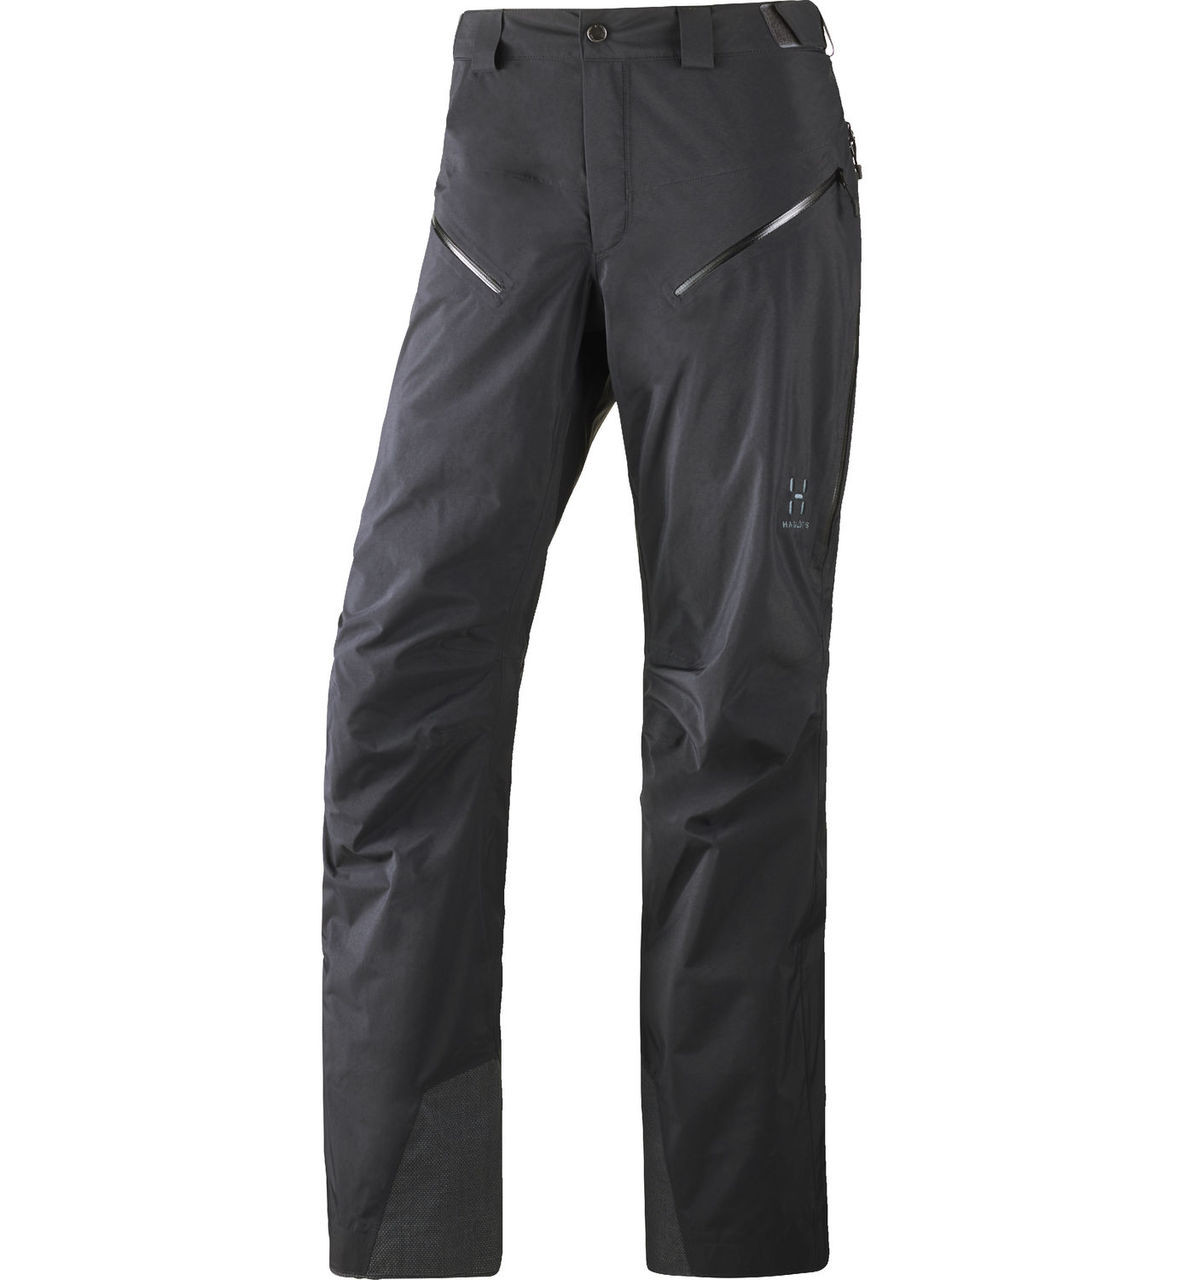 Haglofs Khione Pant Women - true black